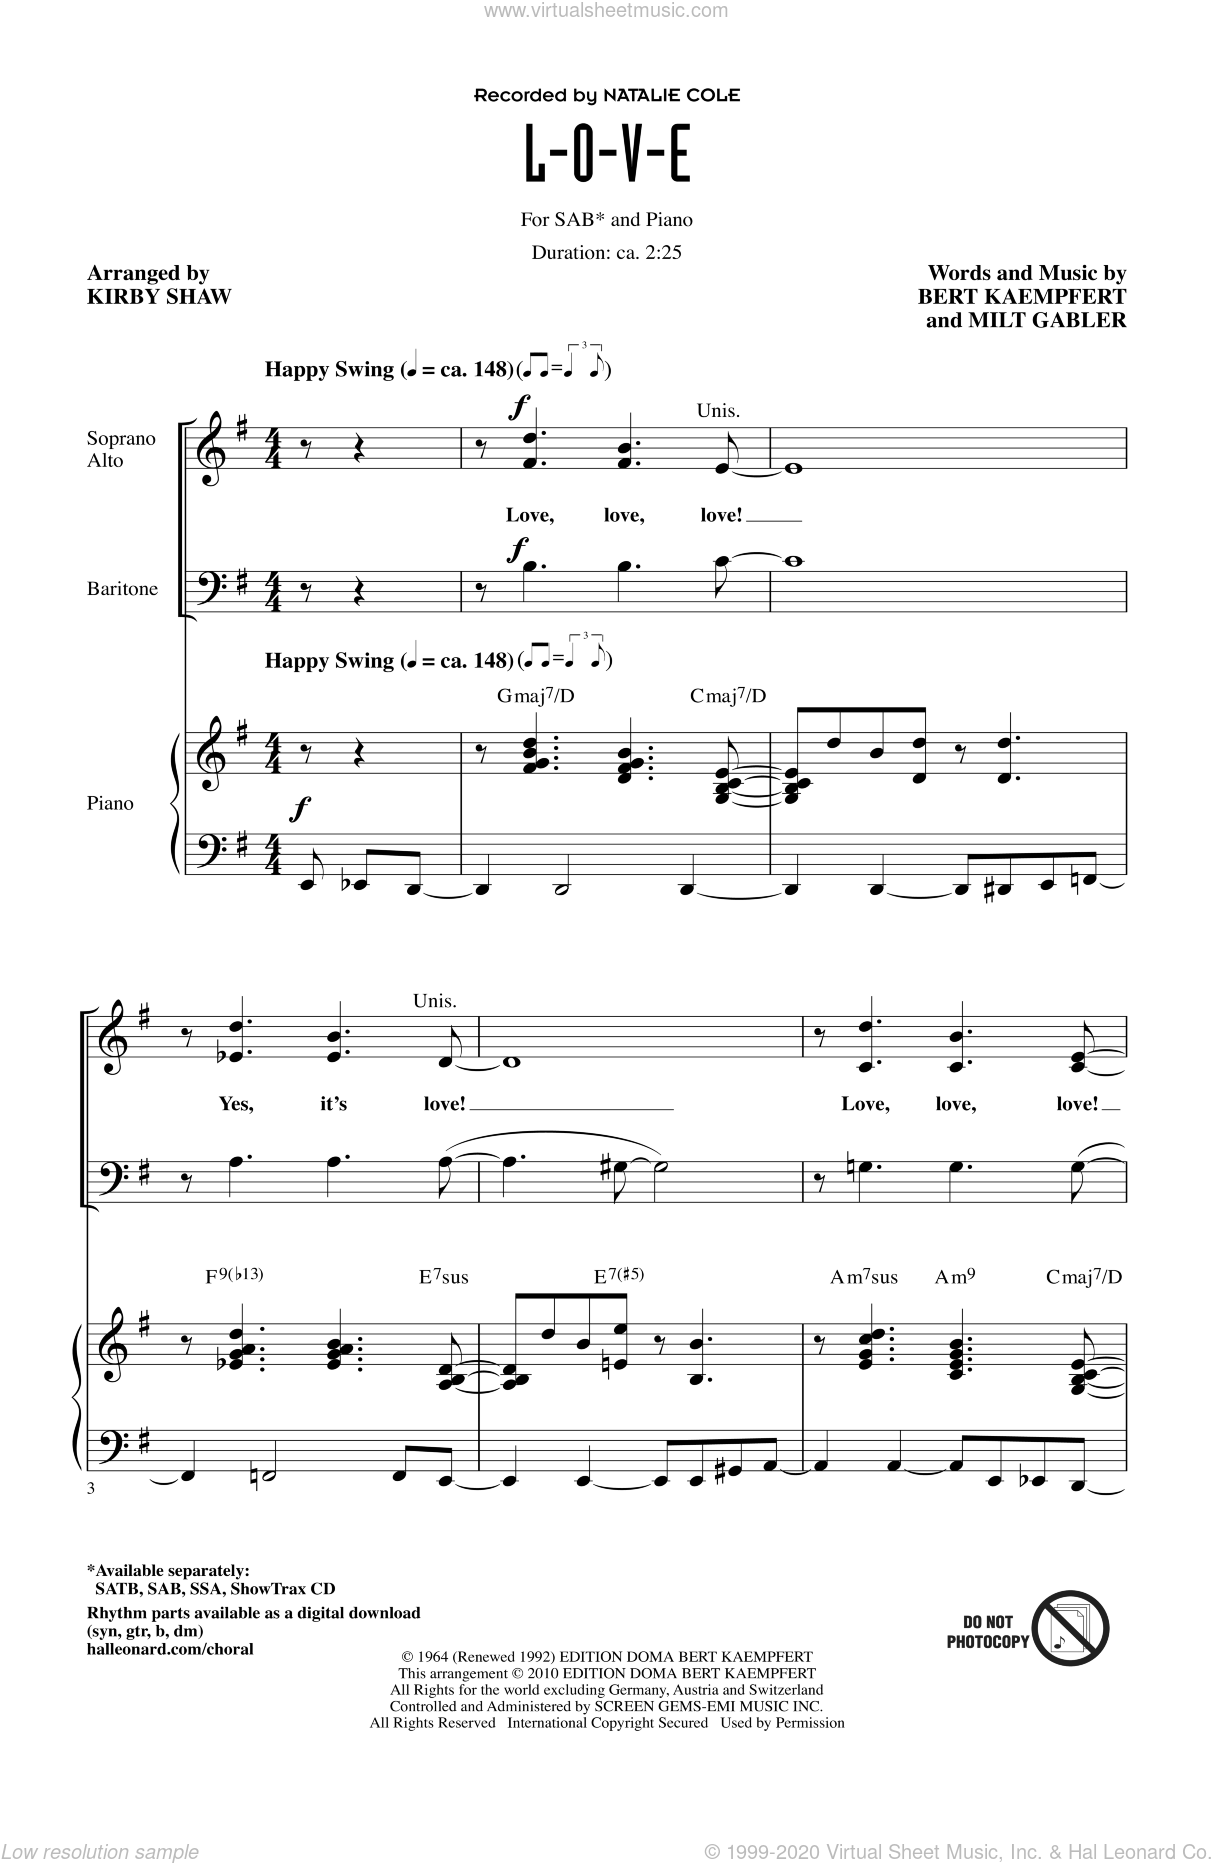 L-O-V-E sheet music for choir and piano (SAB) by Bert Kaempfert, Kirby Shaw, Milt Gabler and Natalie Cole. Score Image Preview.